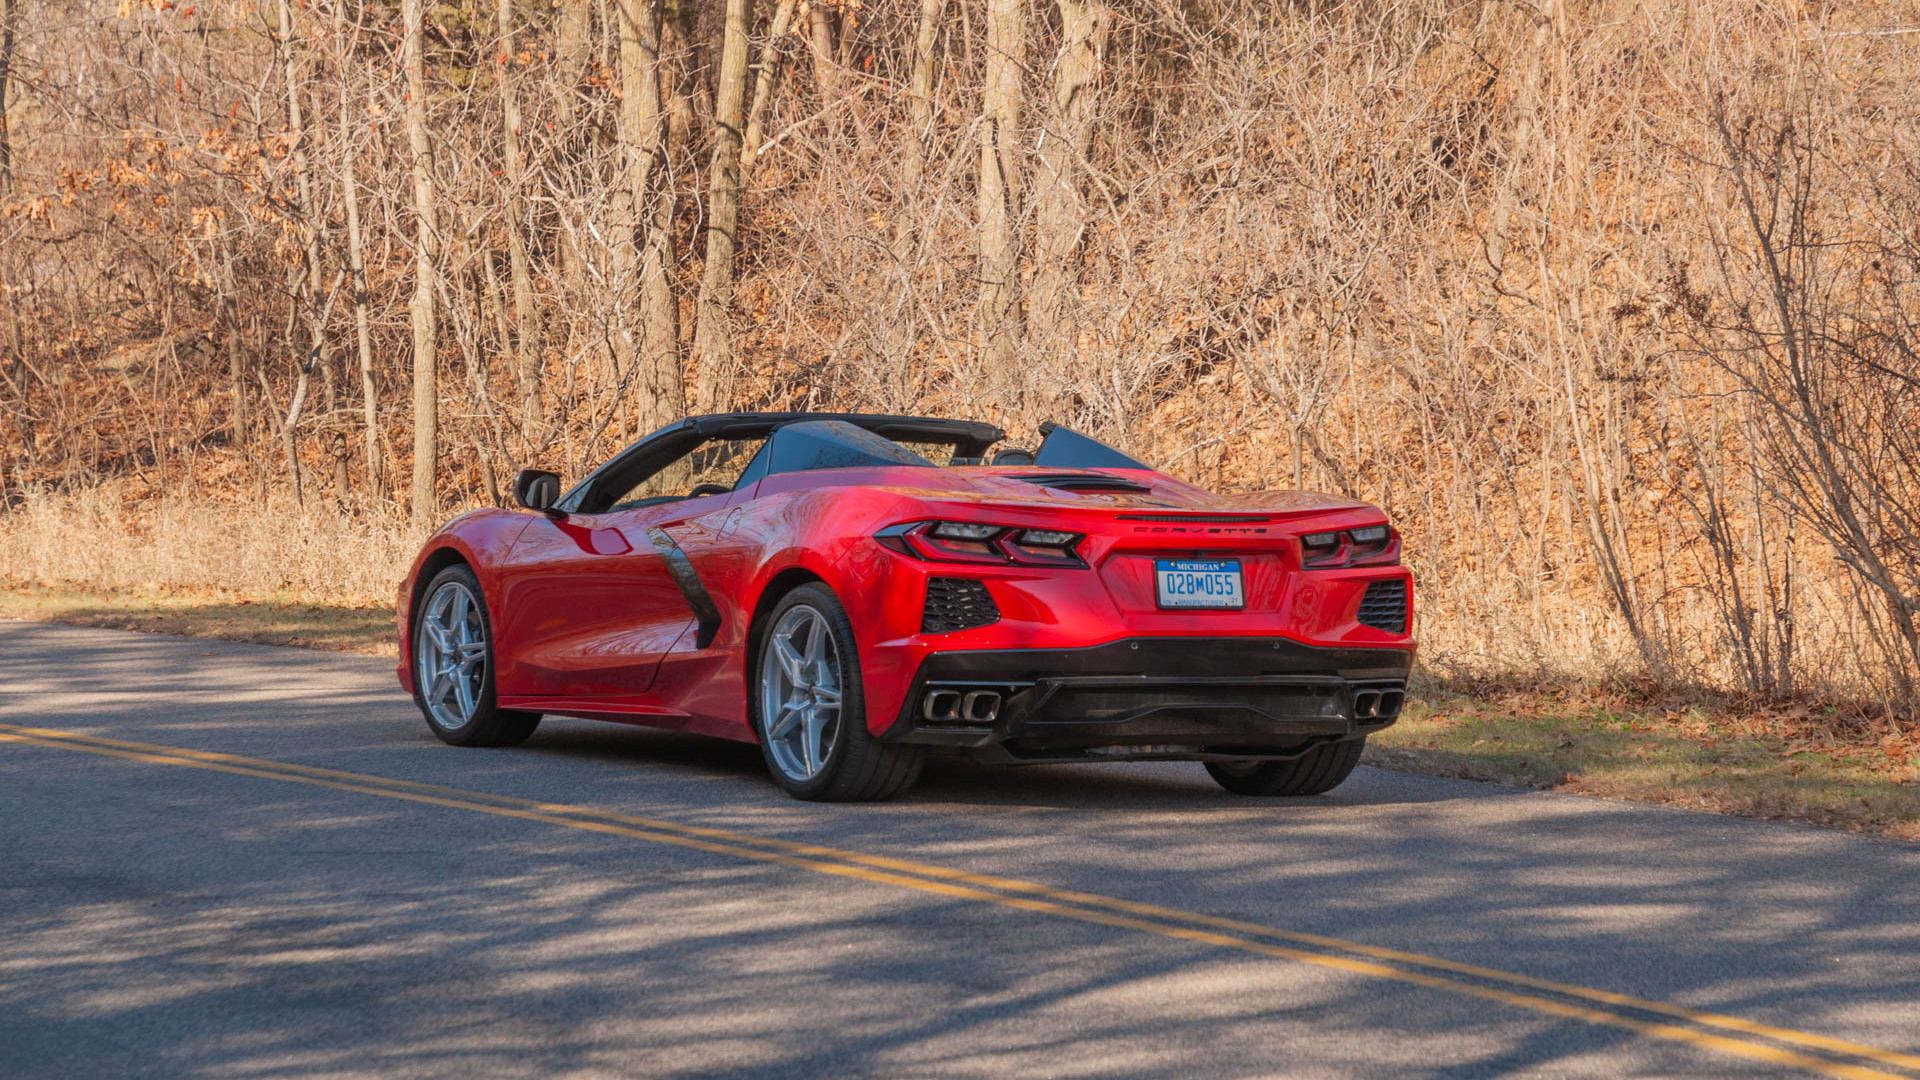 2020 Chevrolet Corvette convertible